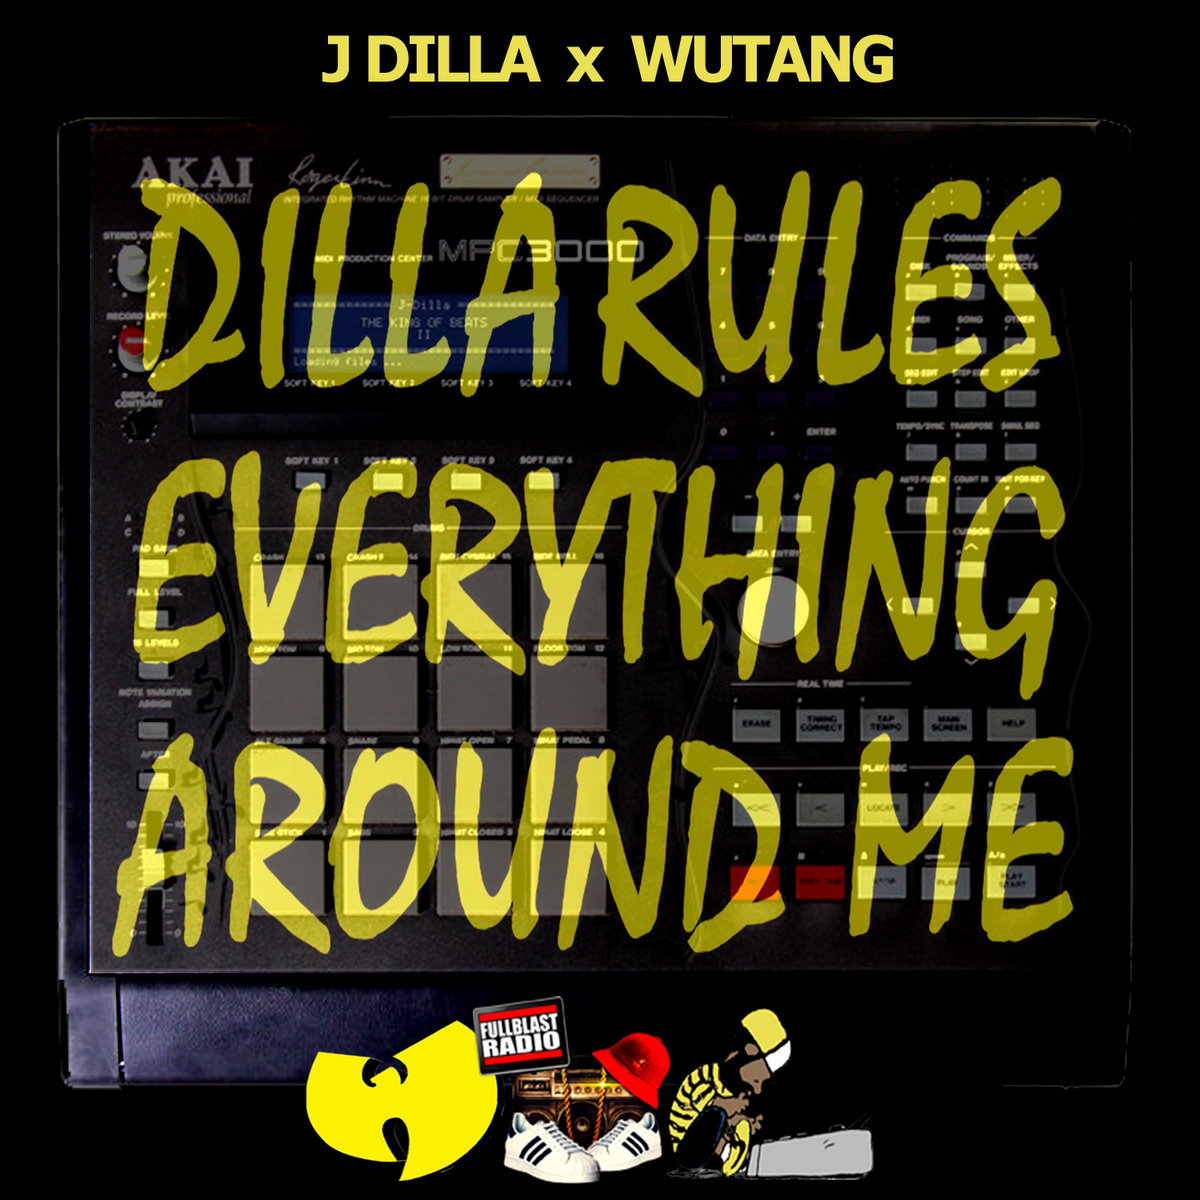 J Dilla x Wutang - Dilla Rules Everything Around Me (D R E A M